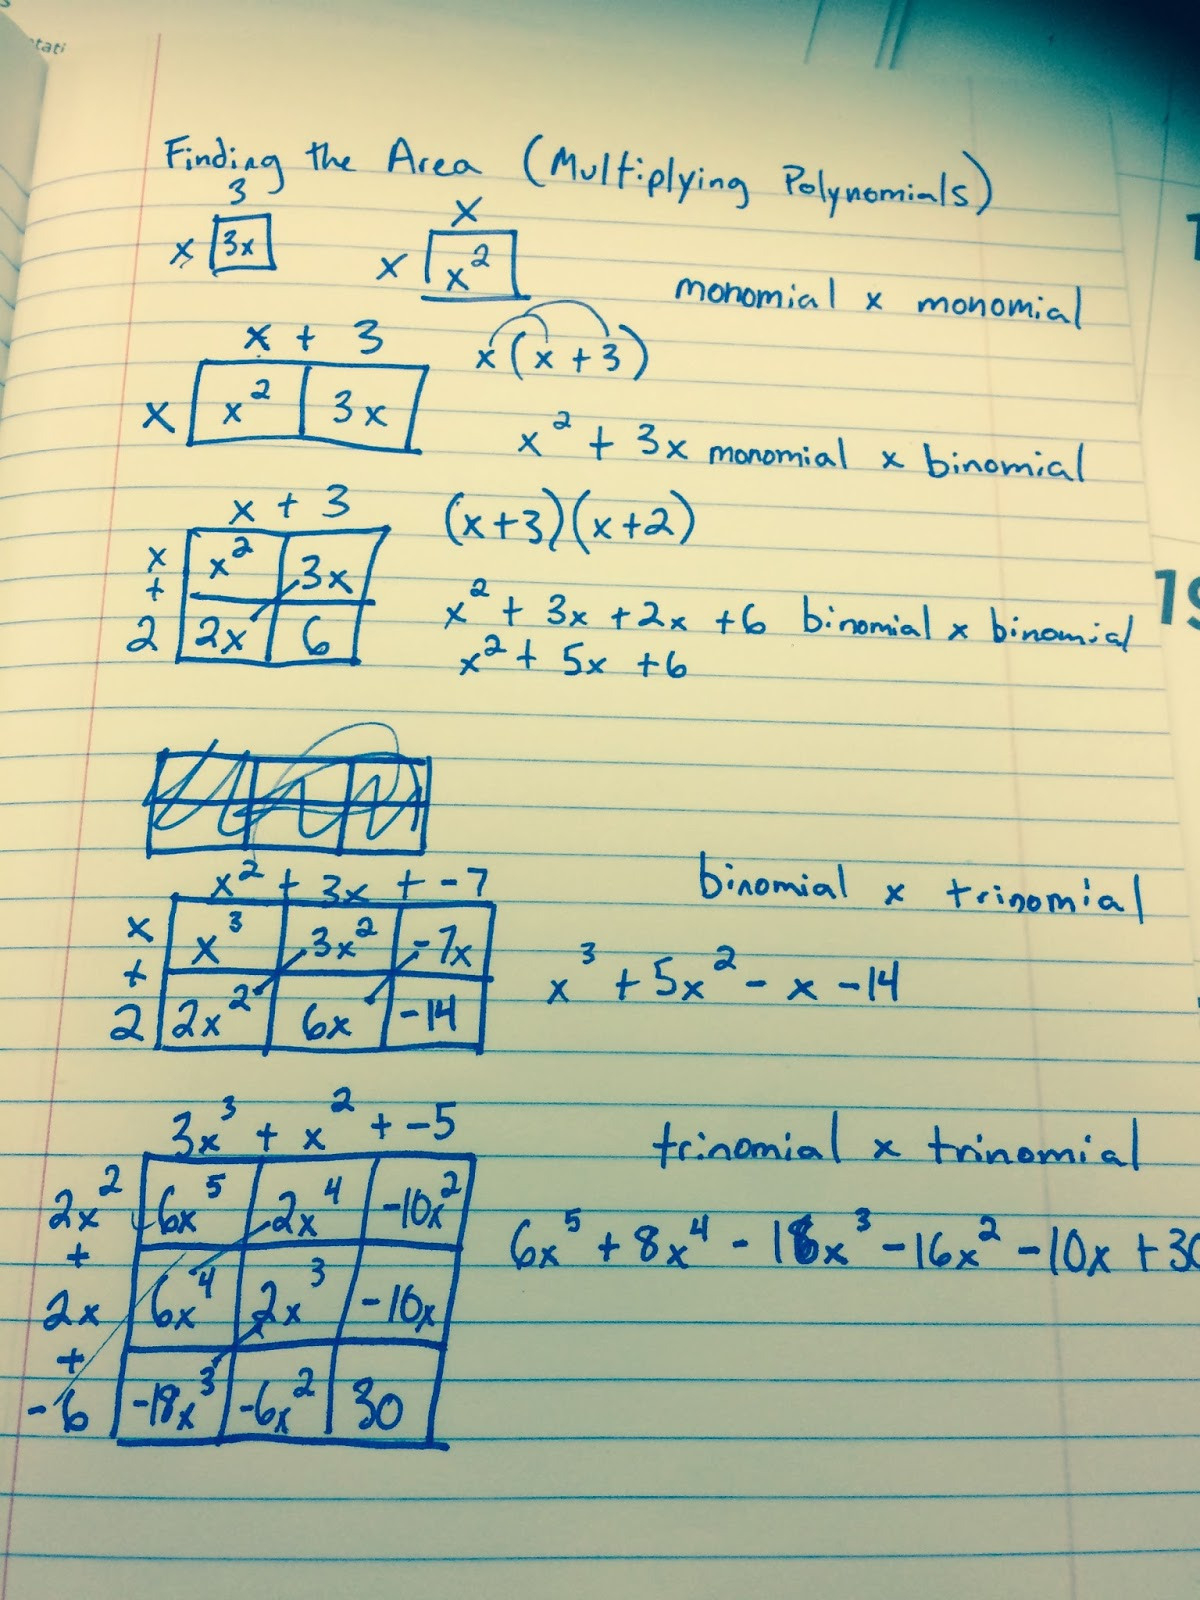 53 Adding And Subtracting Polynomials Worksheet Answers